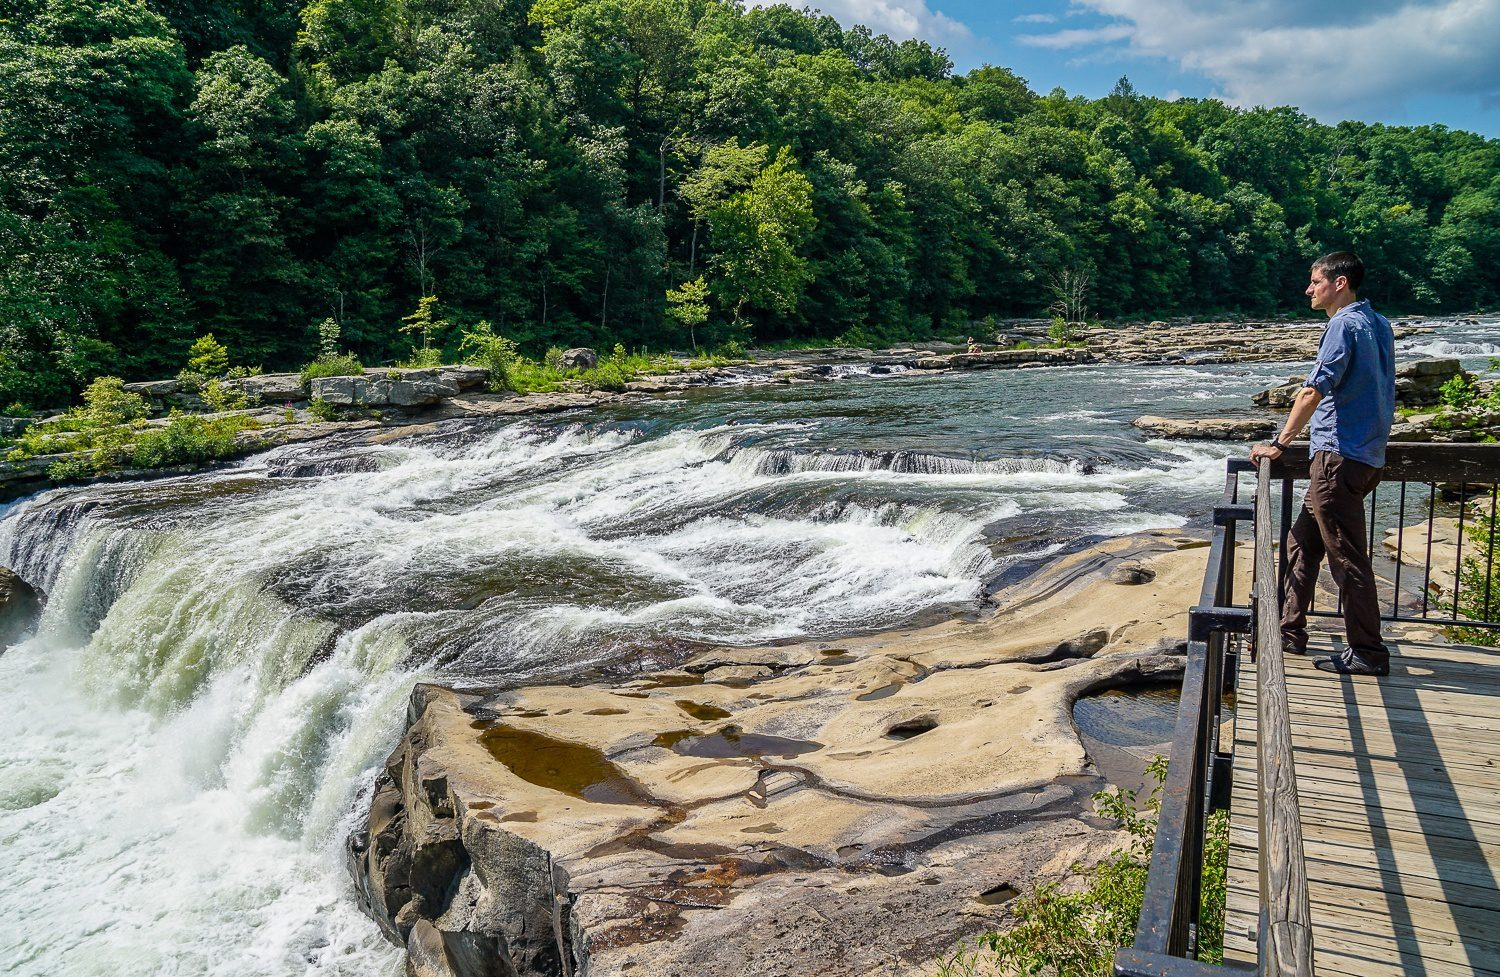 The Youghiogheny river, where whitewater rafting happens at Ohiopyle State Park.